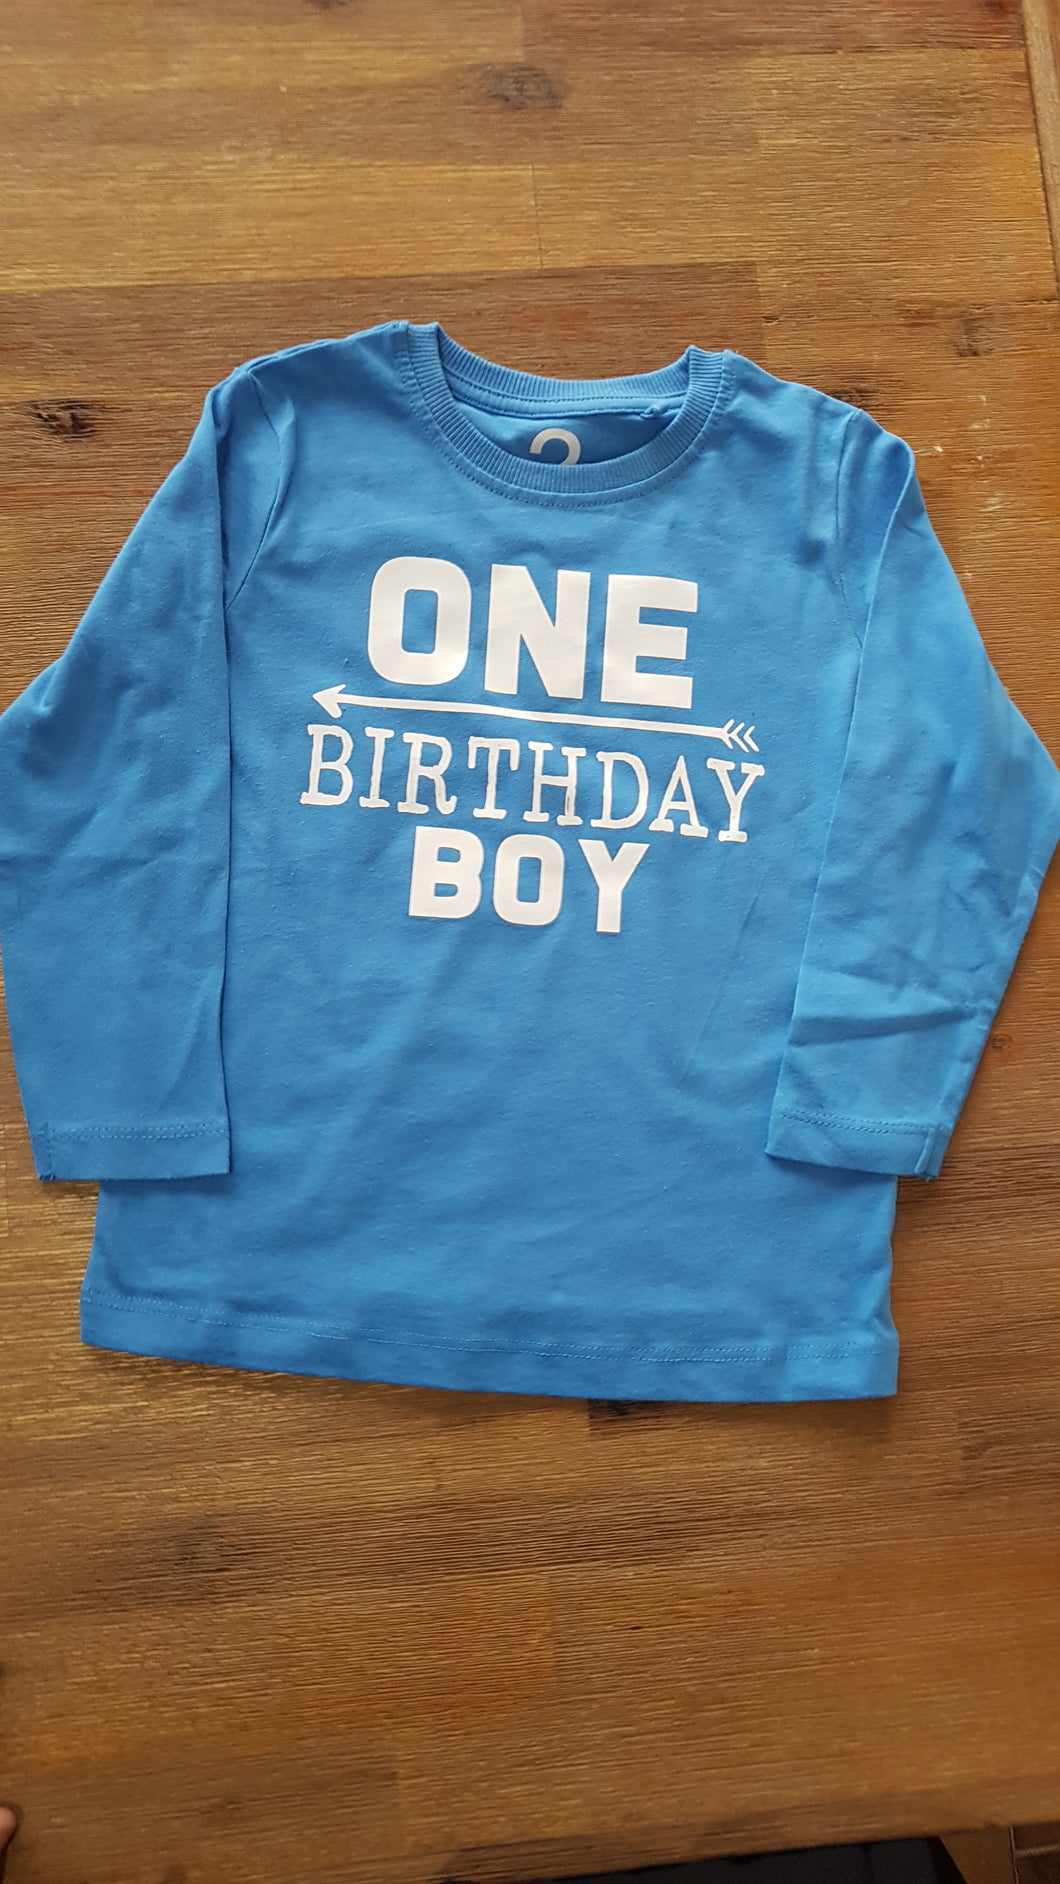 One - birthday boy top